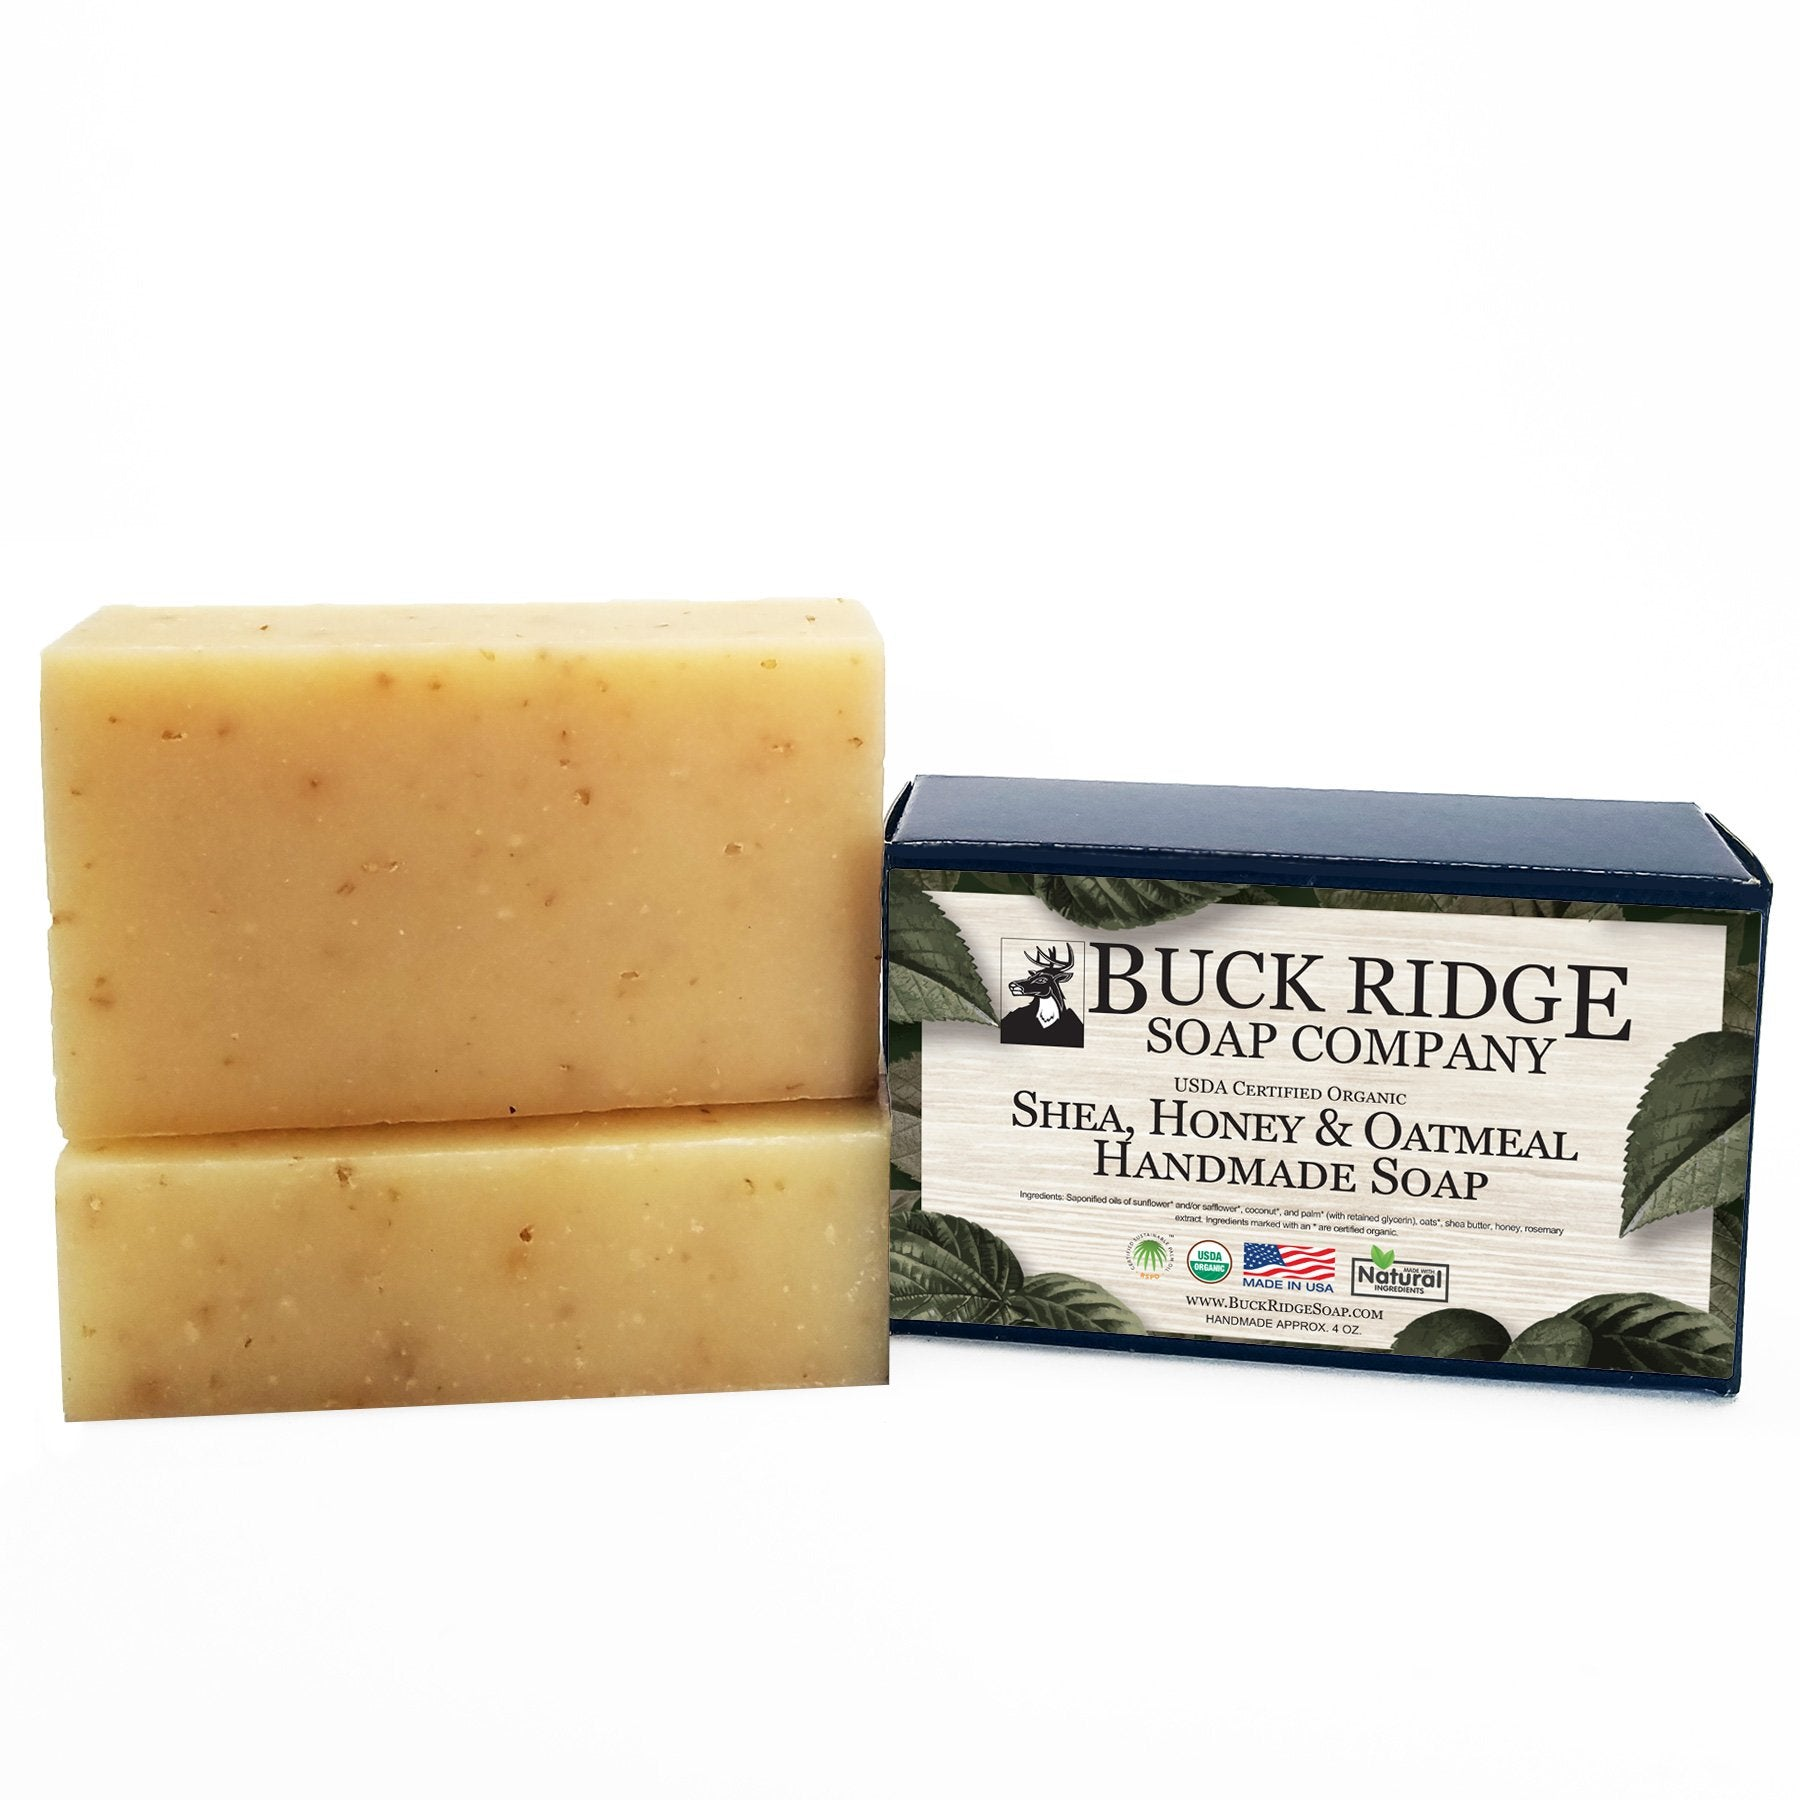 USDA Certified Organic Shea, Honey and Oatmeal handmade soap bars